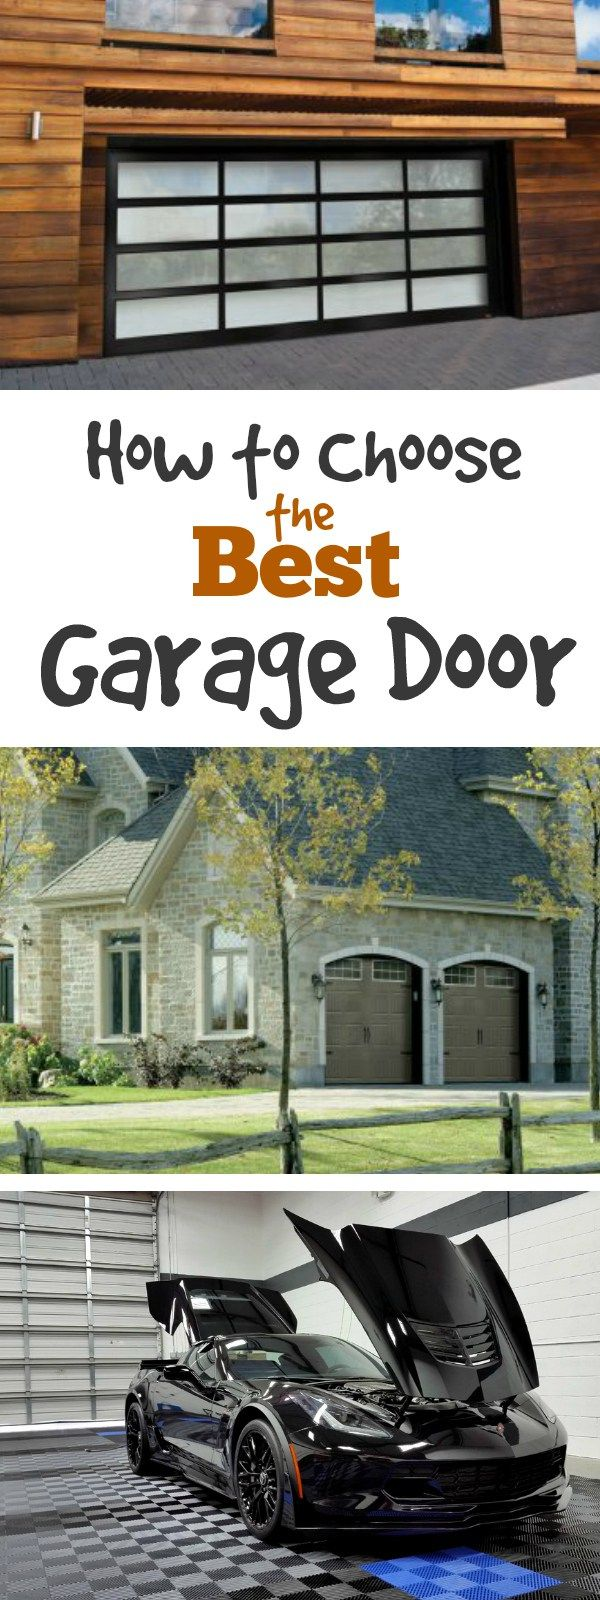 156 best images about garage door ideas on pinterest How to select a garage door opener